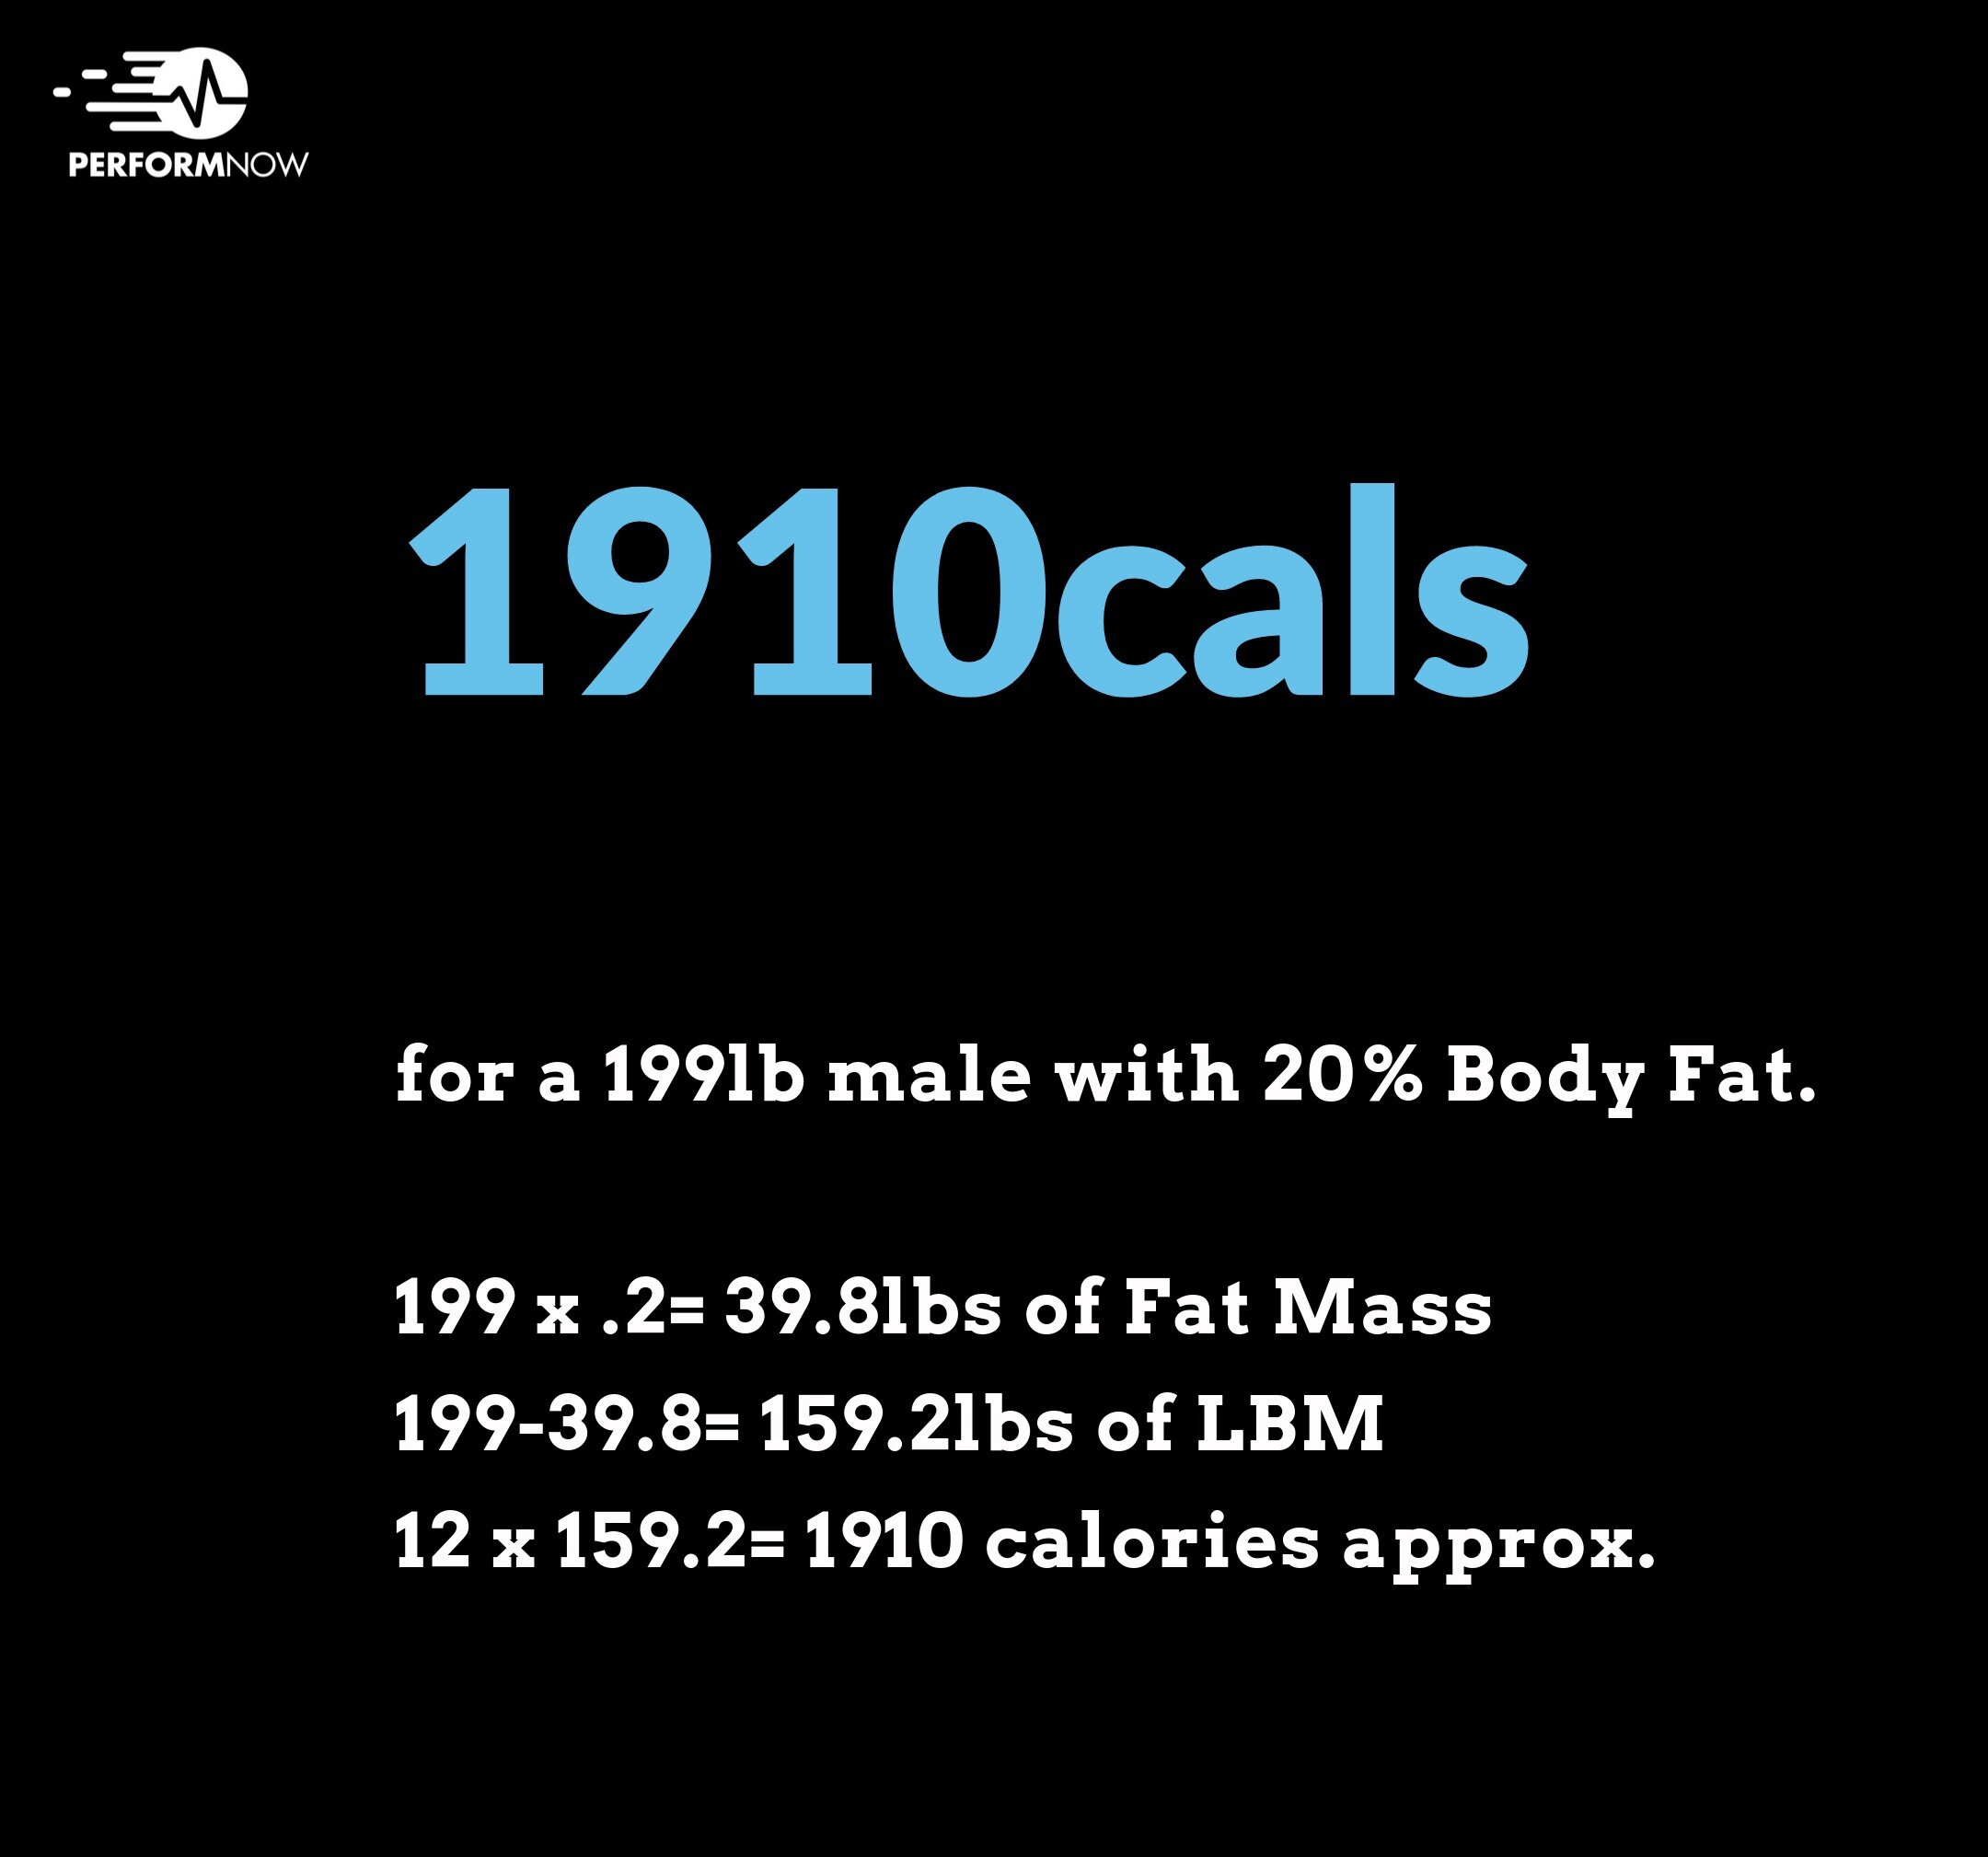 Example for 199lbs Male with 20% Body Fat